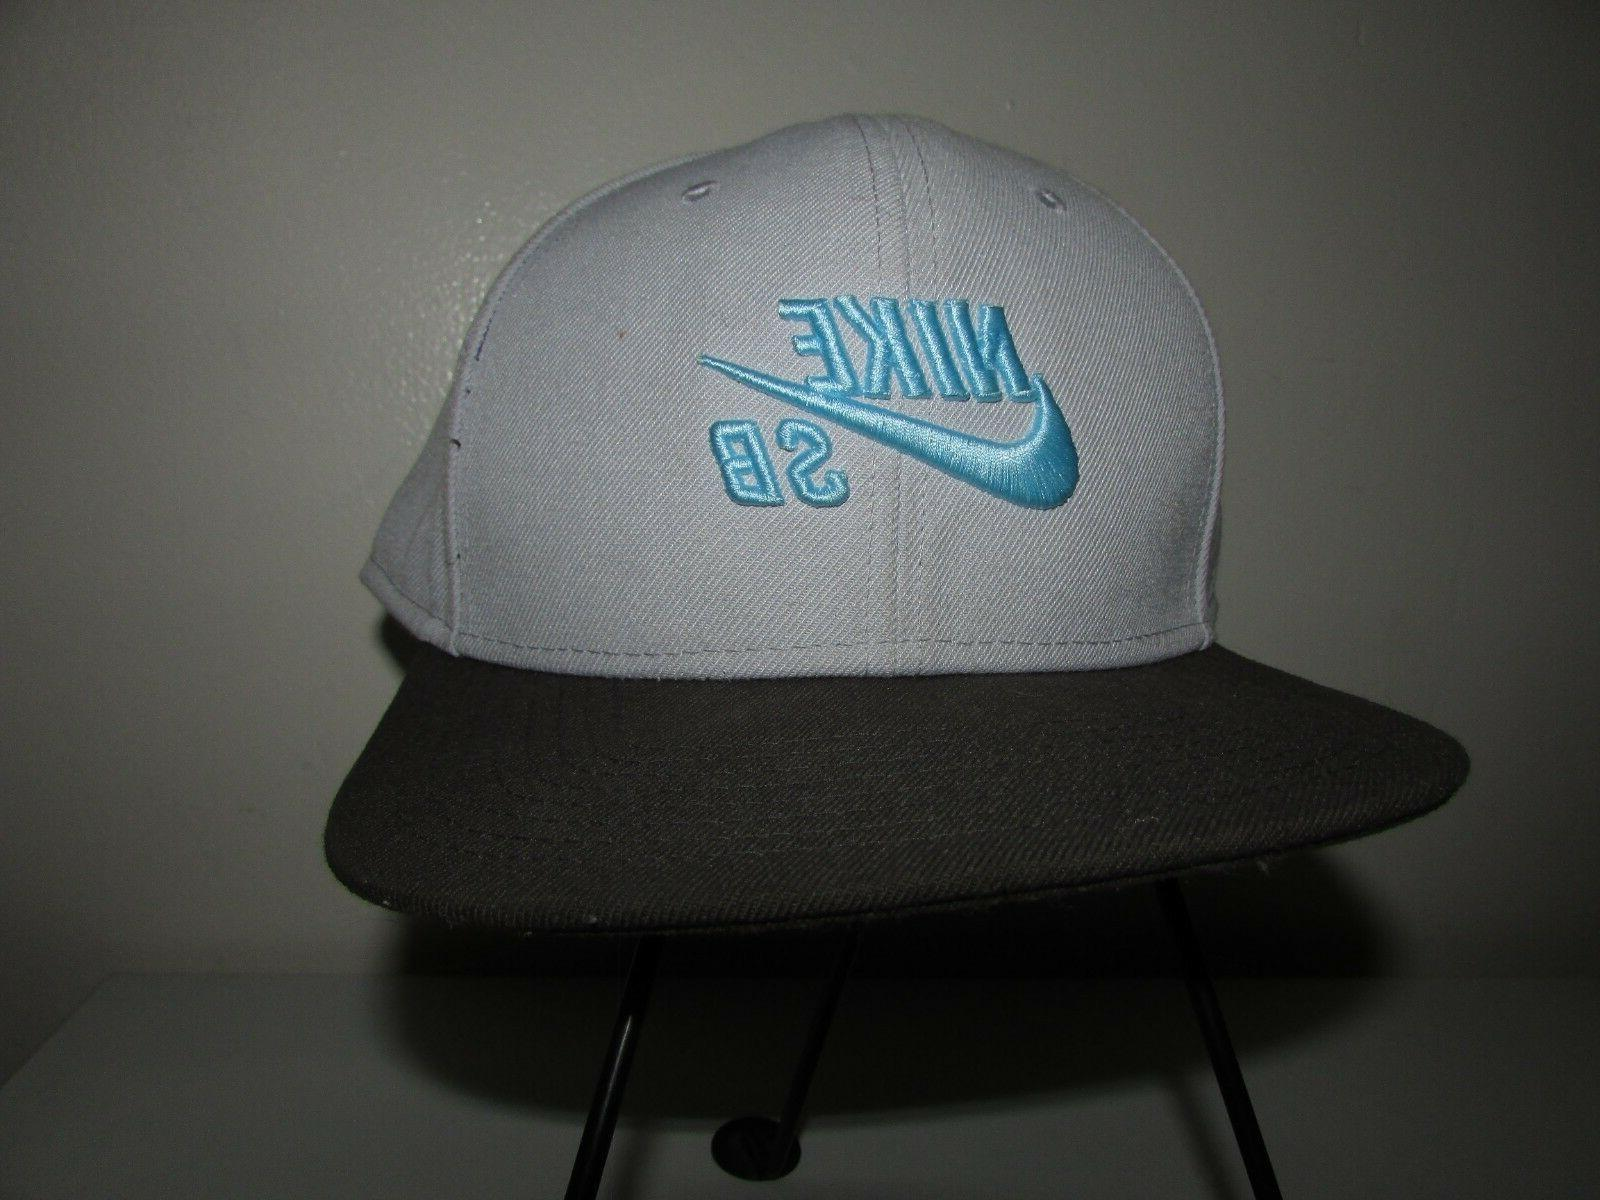 sb skateboarding performance trucker snapback hat new